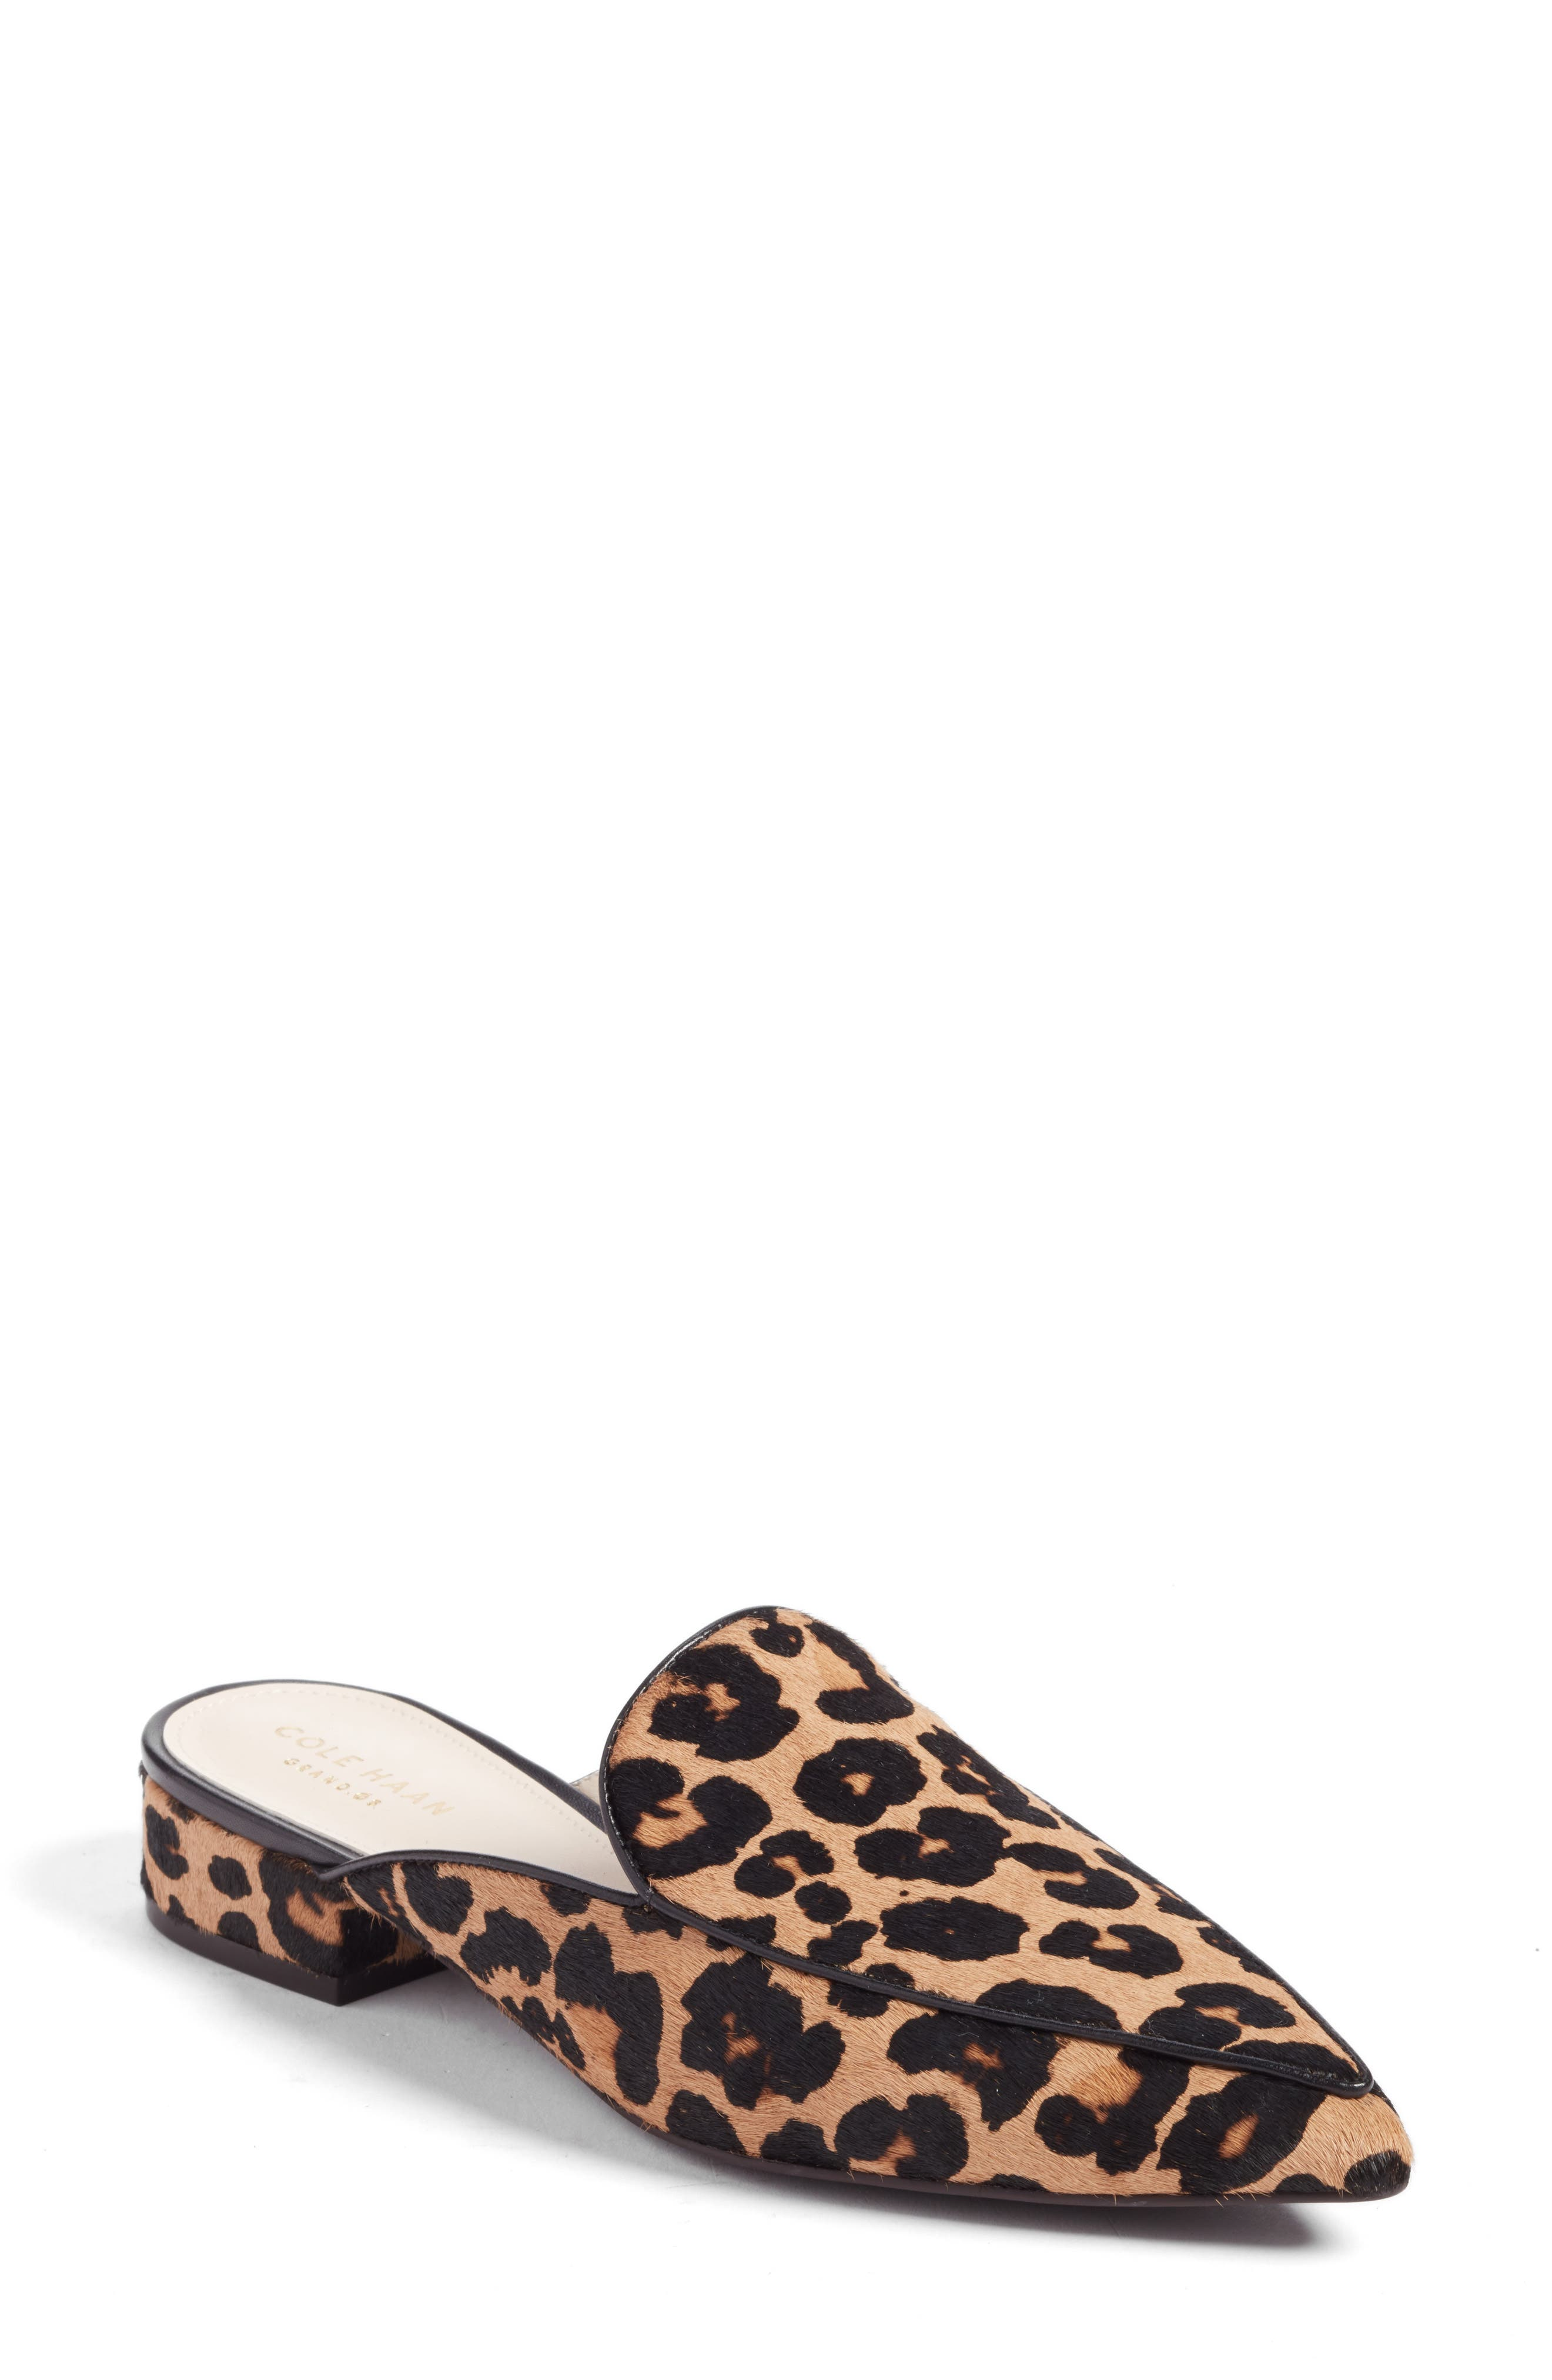 Piper Loafer Mule,                             Main thumbnail 1, color,                             Ocelot Print Calf Hair